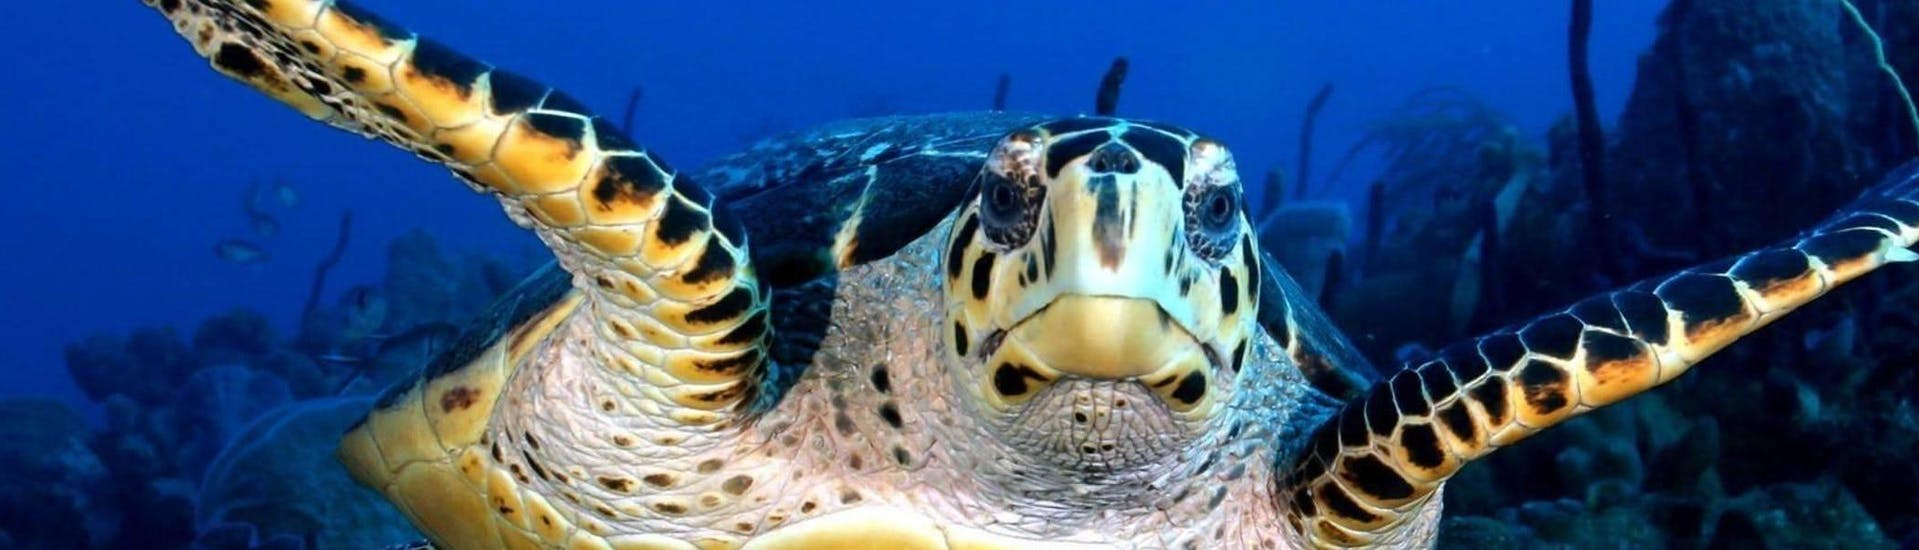 A turtle is pictured during Guided Boat Dives in Réserve Cousteau for Certified Divers with Les Heures Saines Guadeloupe.